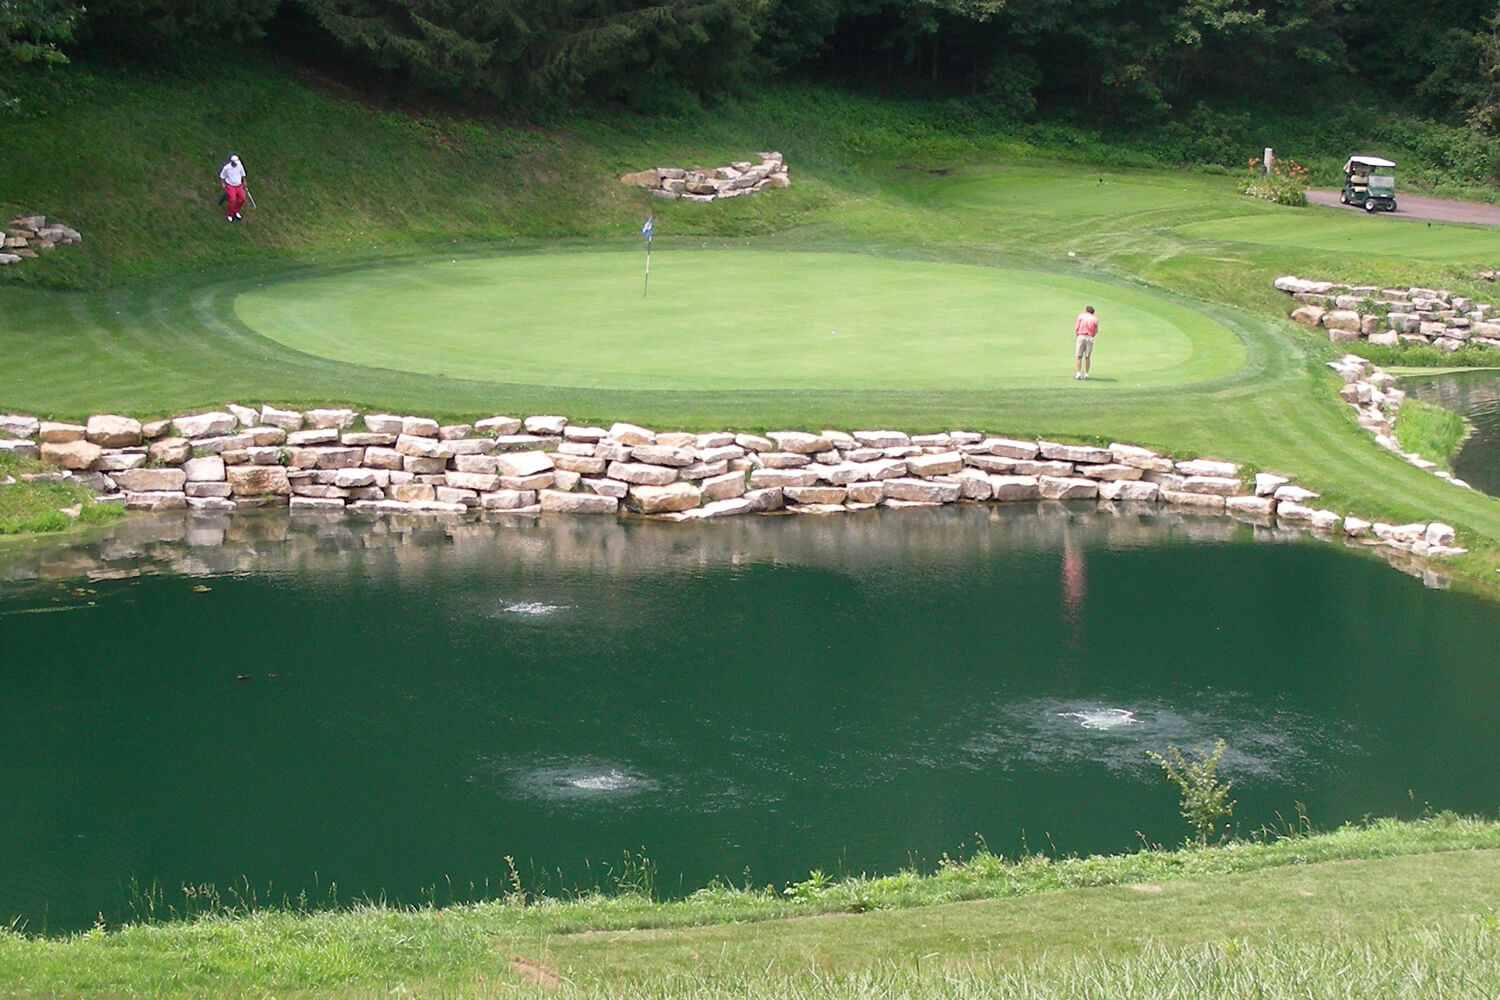 An Otterbine Aerating Fountain Otterbine with Air Flo Diffused Aeration at a golf course